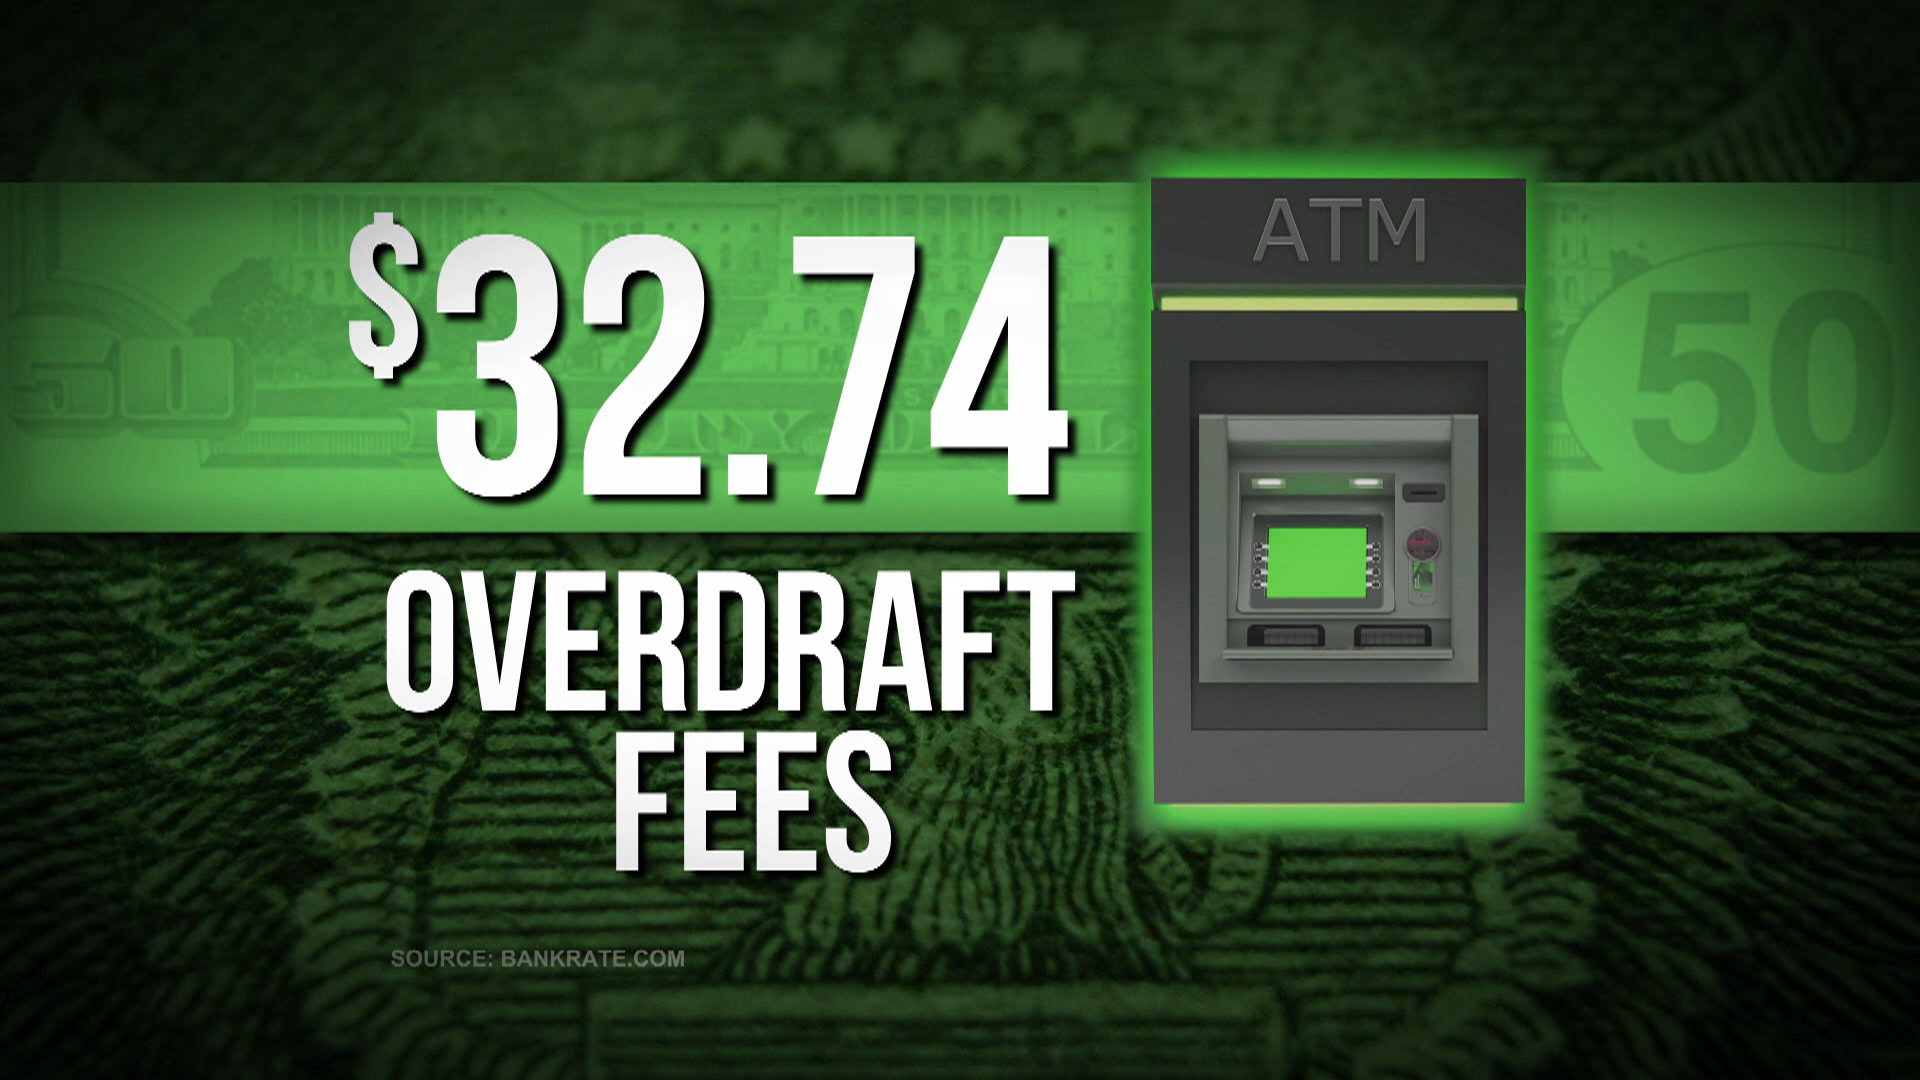 Banks Boosting ATM, Checking Account Overdraft Fees